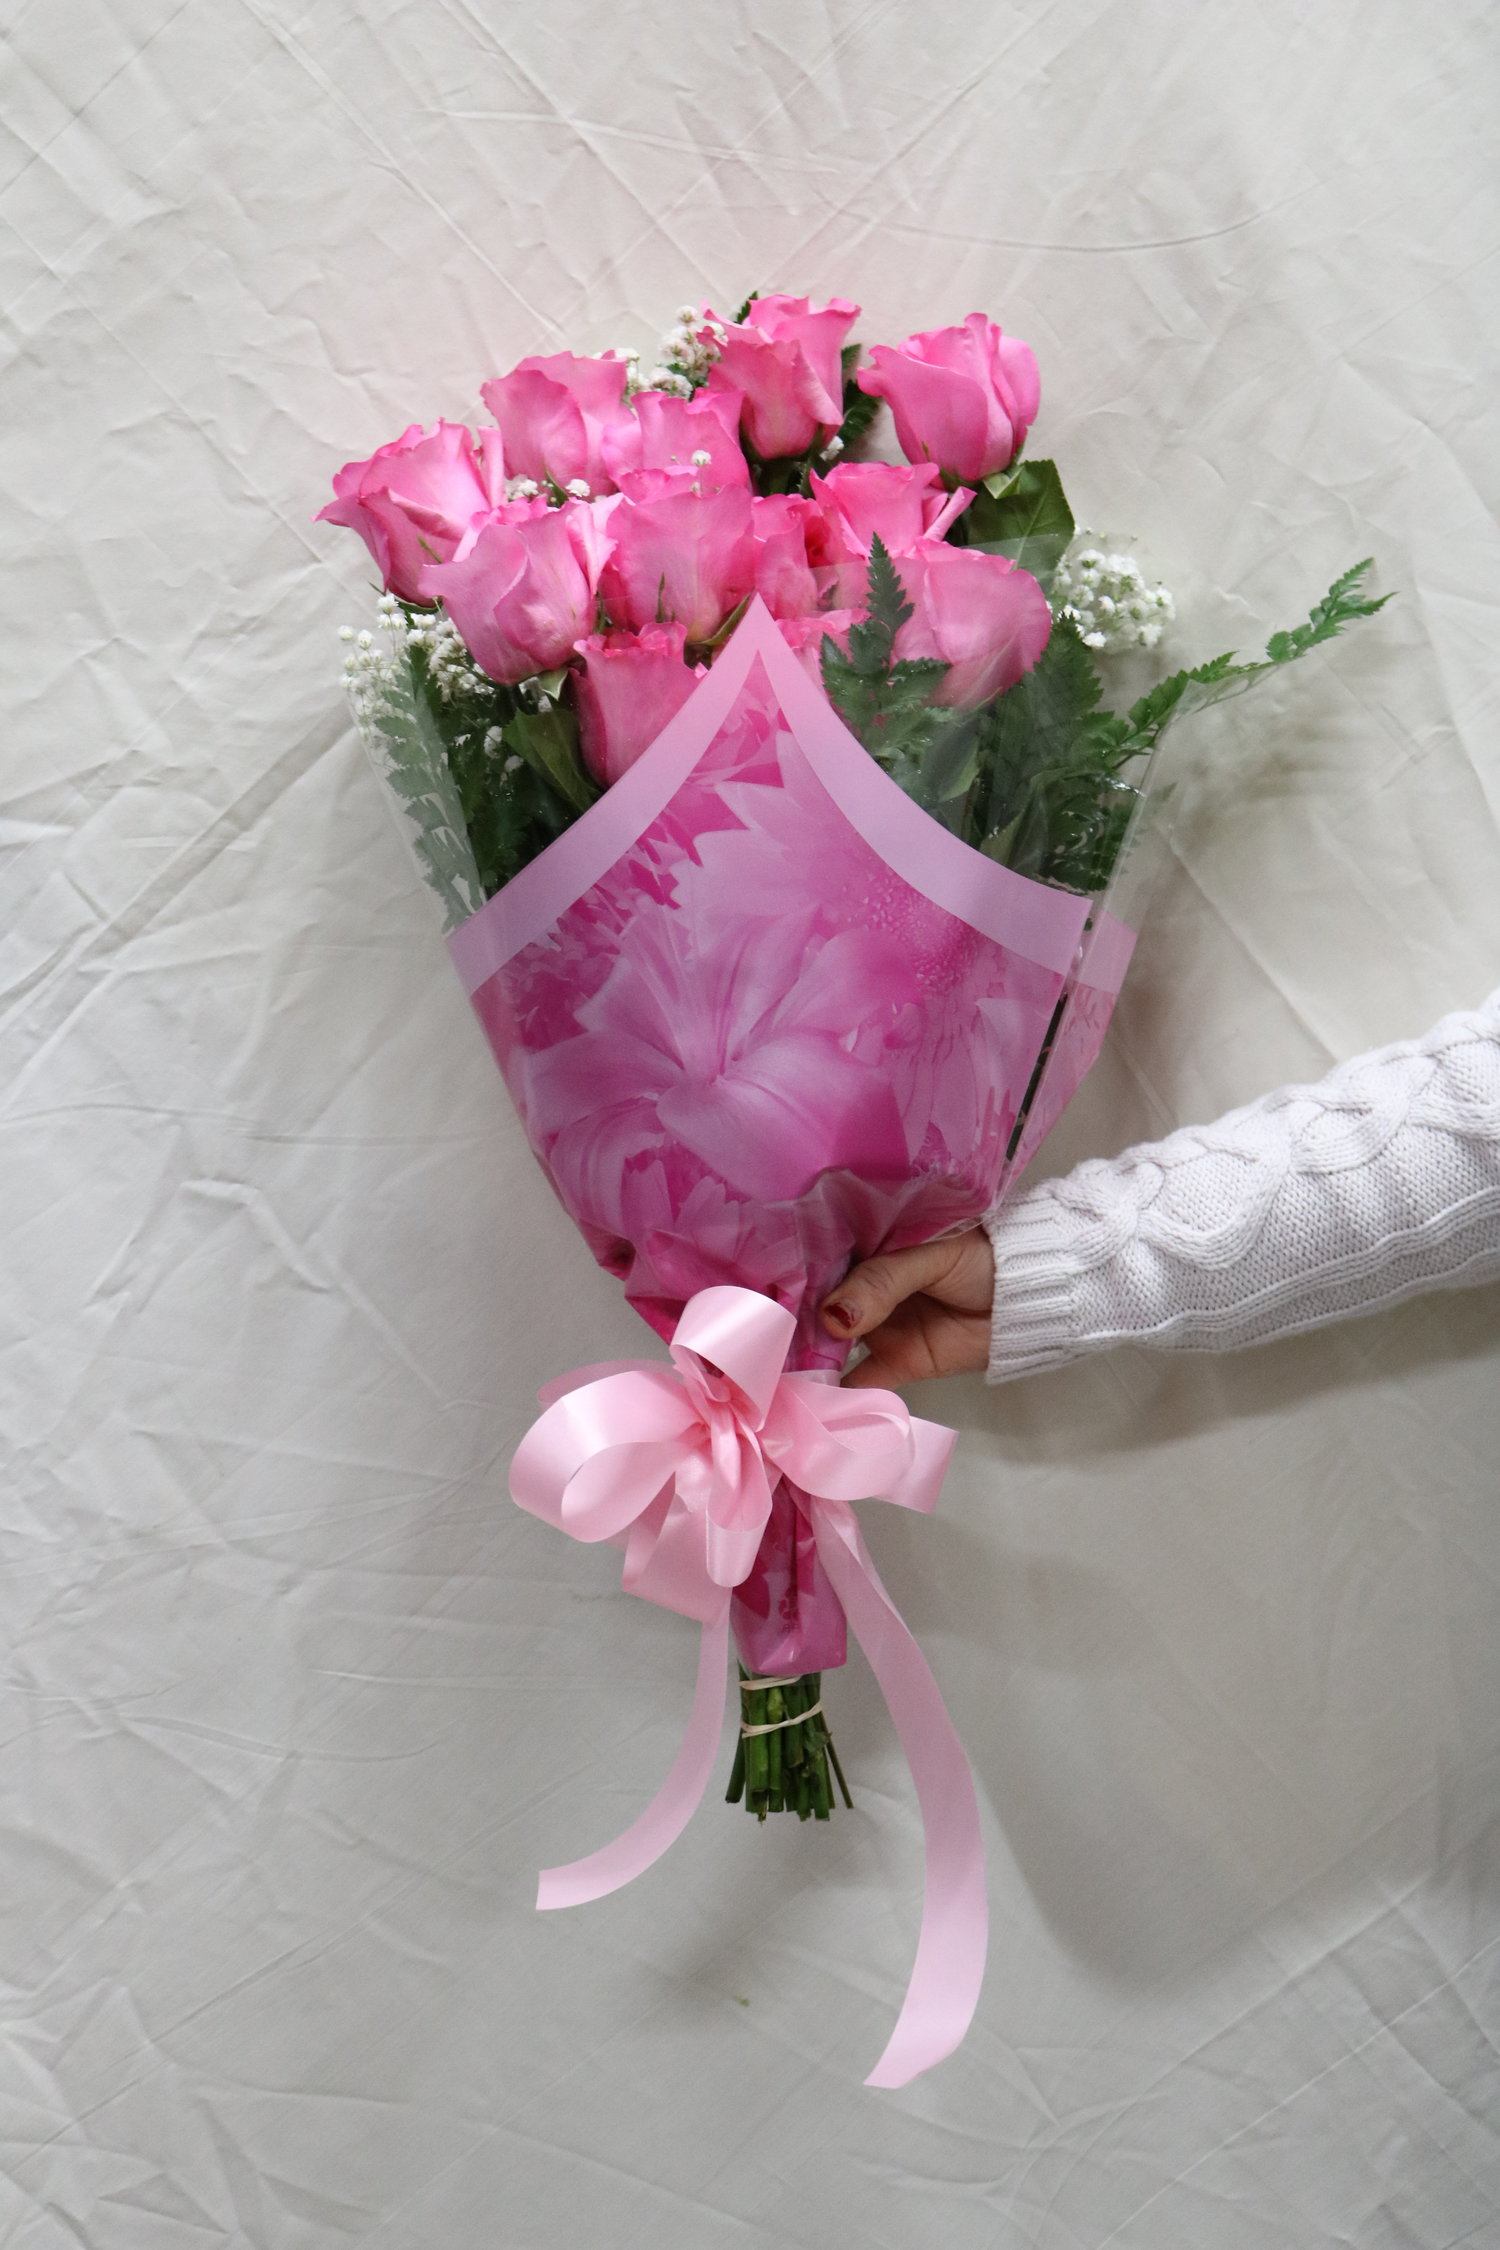 Sweetheart florist pink roses pink roses flower bouquets izmirmasajfo